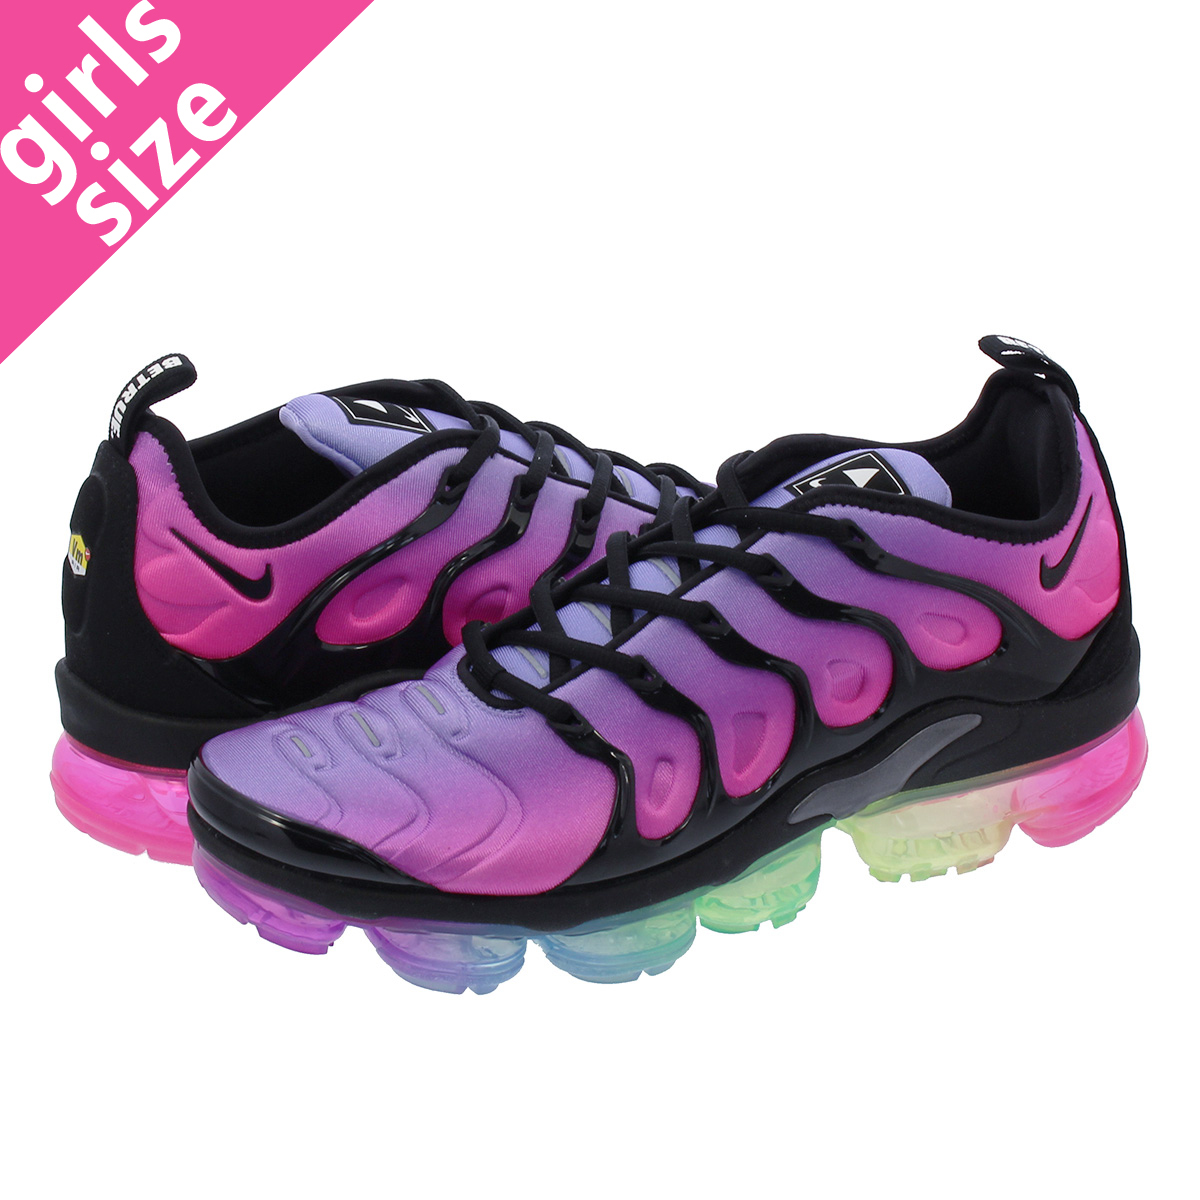 differently 1bc79 b44a2 NIKE AIR VAPORMAX PLUS Nike vapor max plus PURPLE PULSE/PINK BLAST/MULTI  COLOR/BLACK ar4791-500